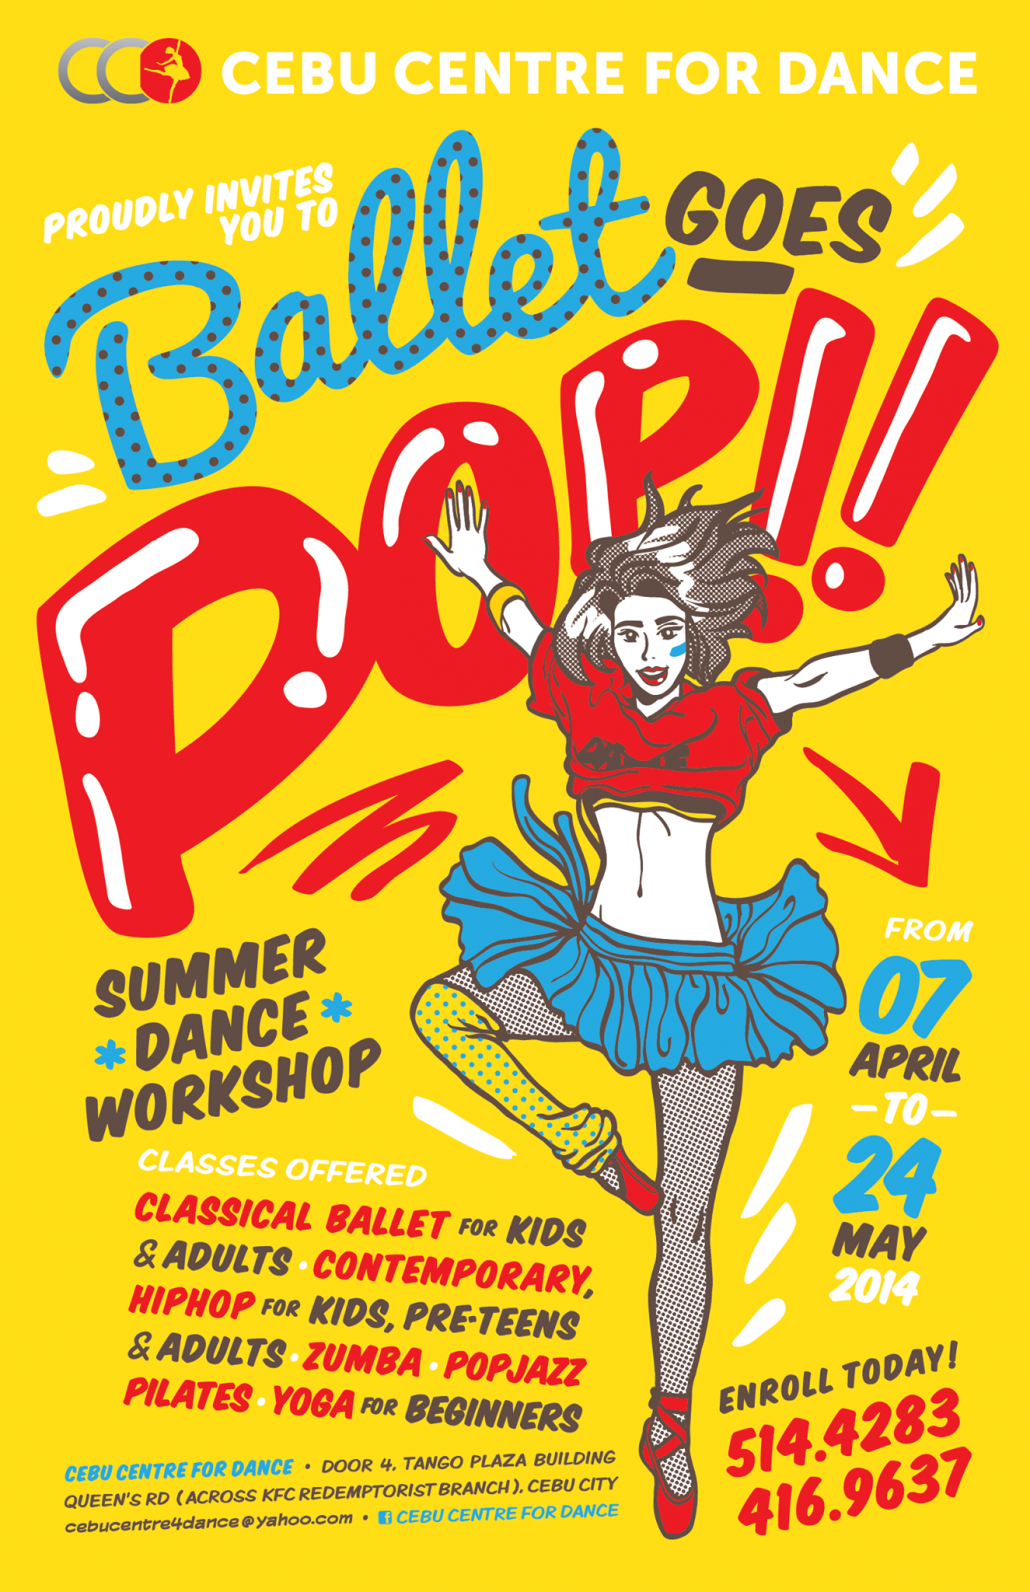 Image Source: Ballet goes pop – https://www.facebook.com/pages/Cebu-Centre-for-Dance/179287935515002